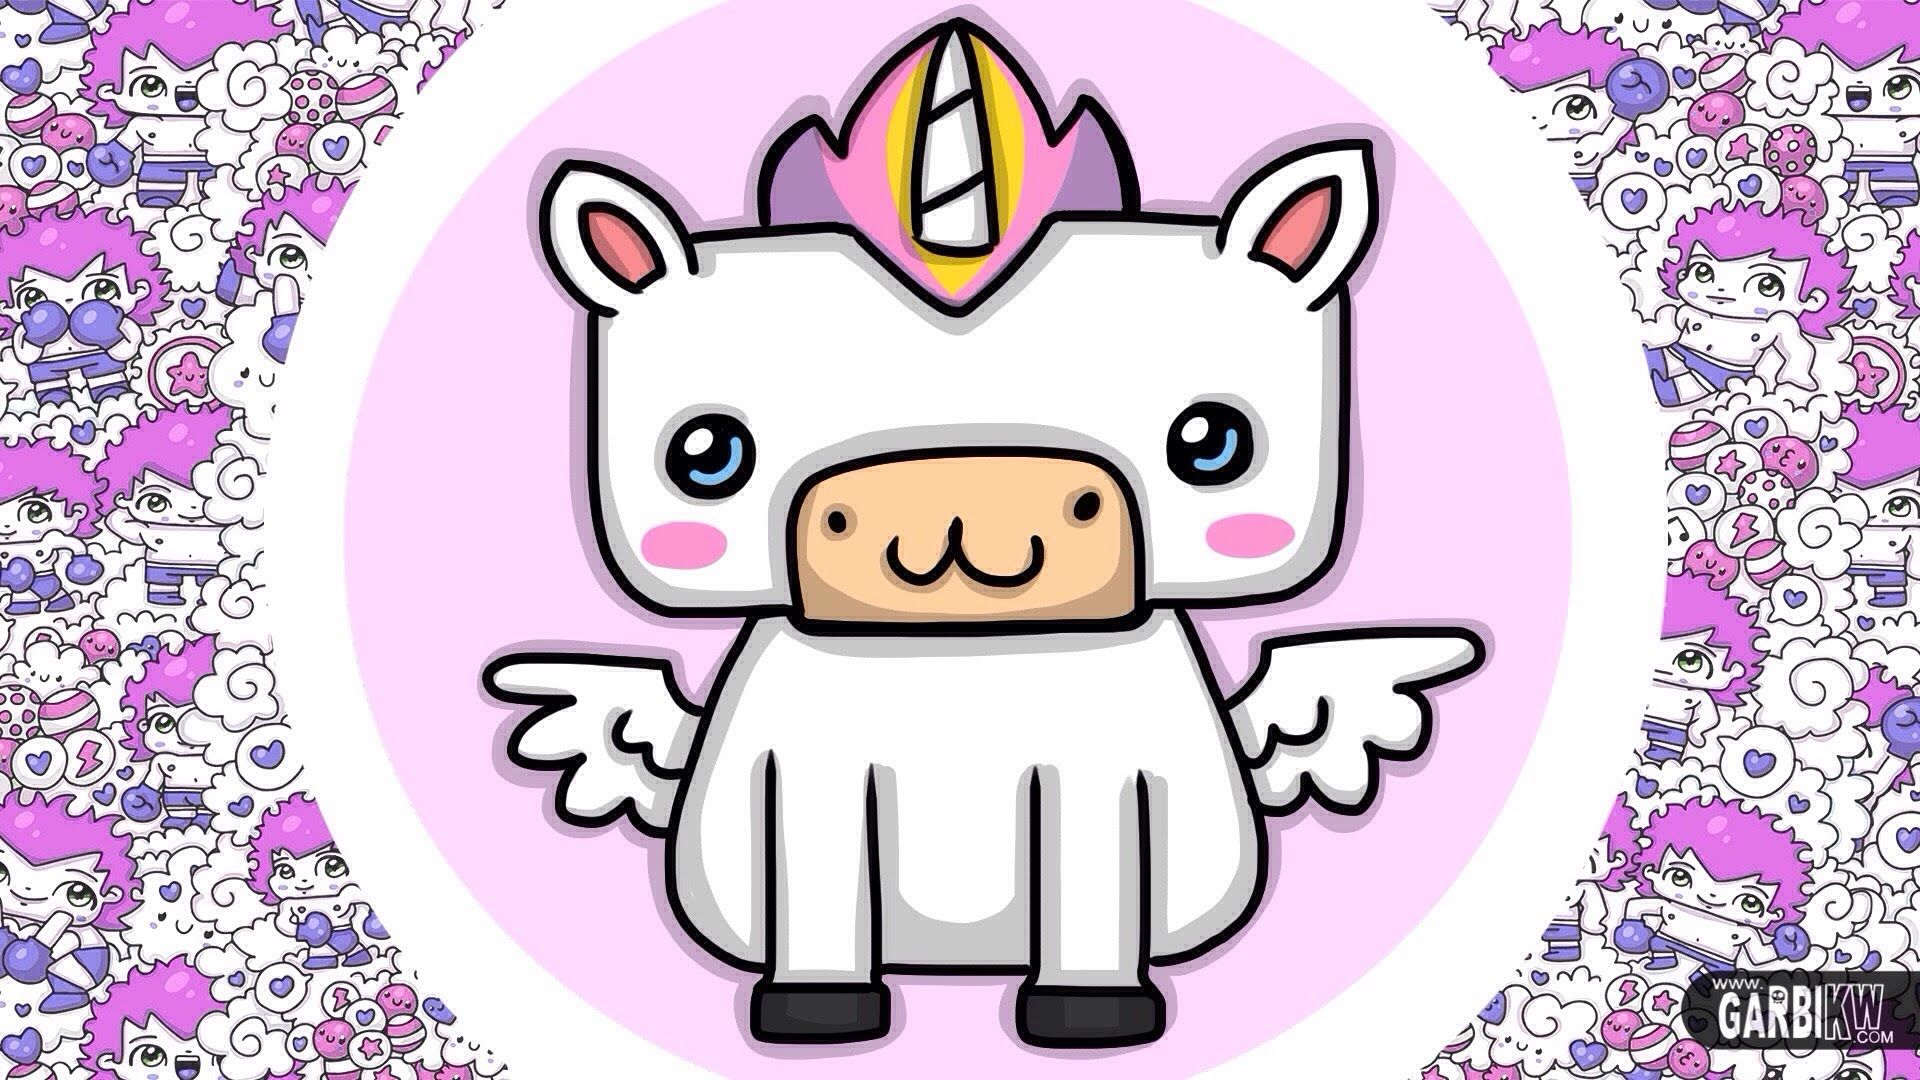 How to draw kawaii unicorn easy drawings hello kawaii machine